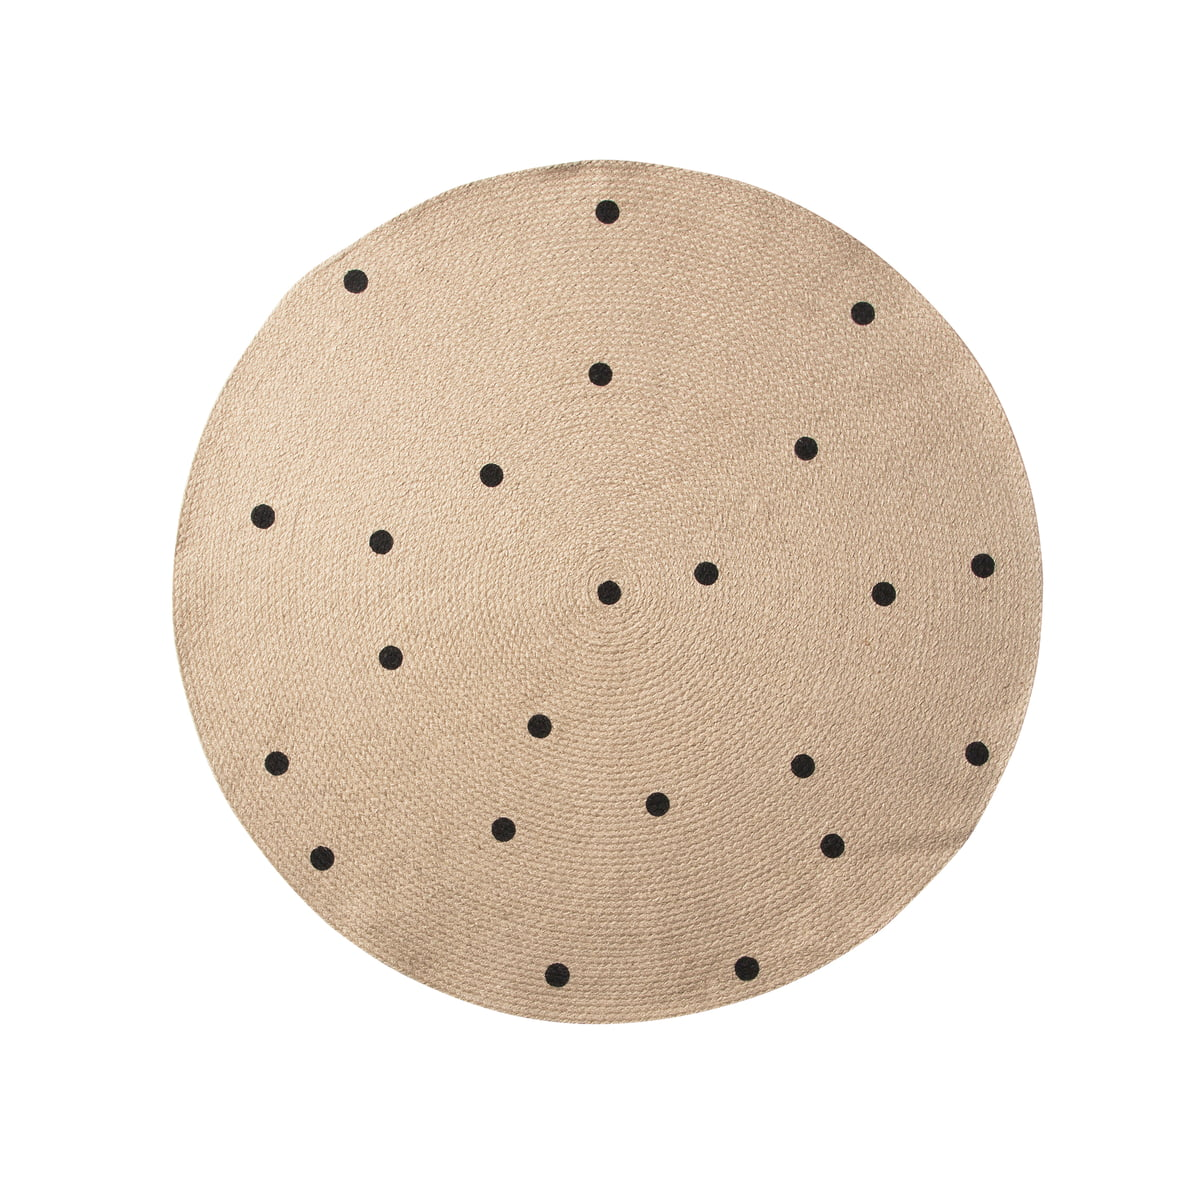 Black Dots Jute Rug by ferm Living in